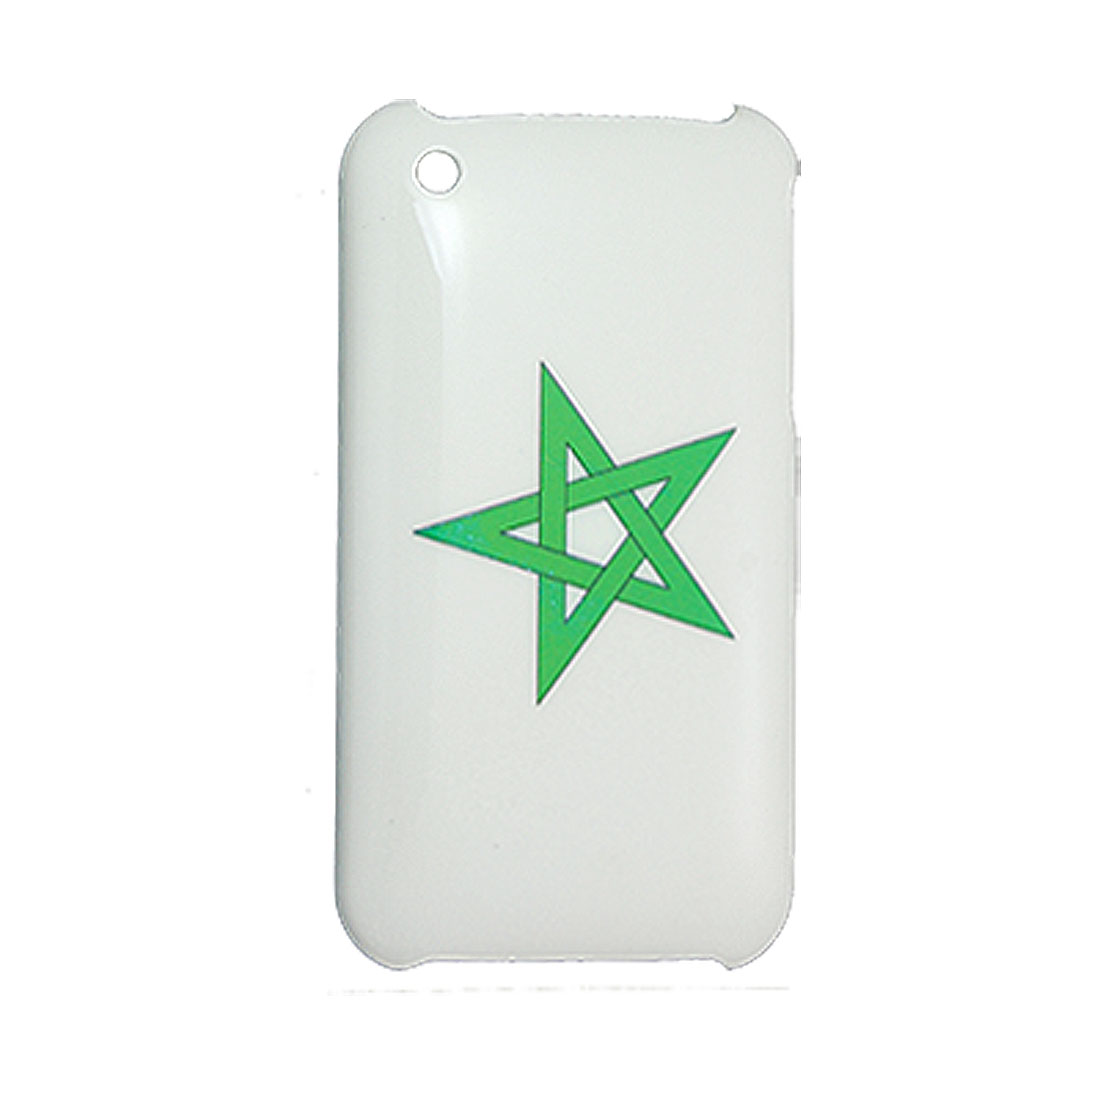 Hard Plasitc White and Green for iPhone 3G Back Case